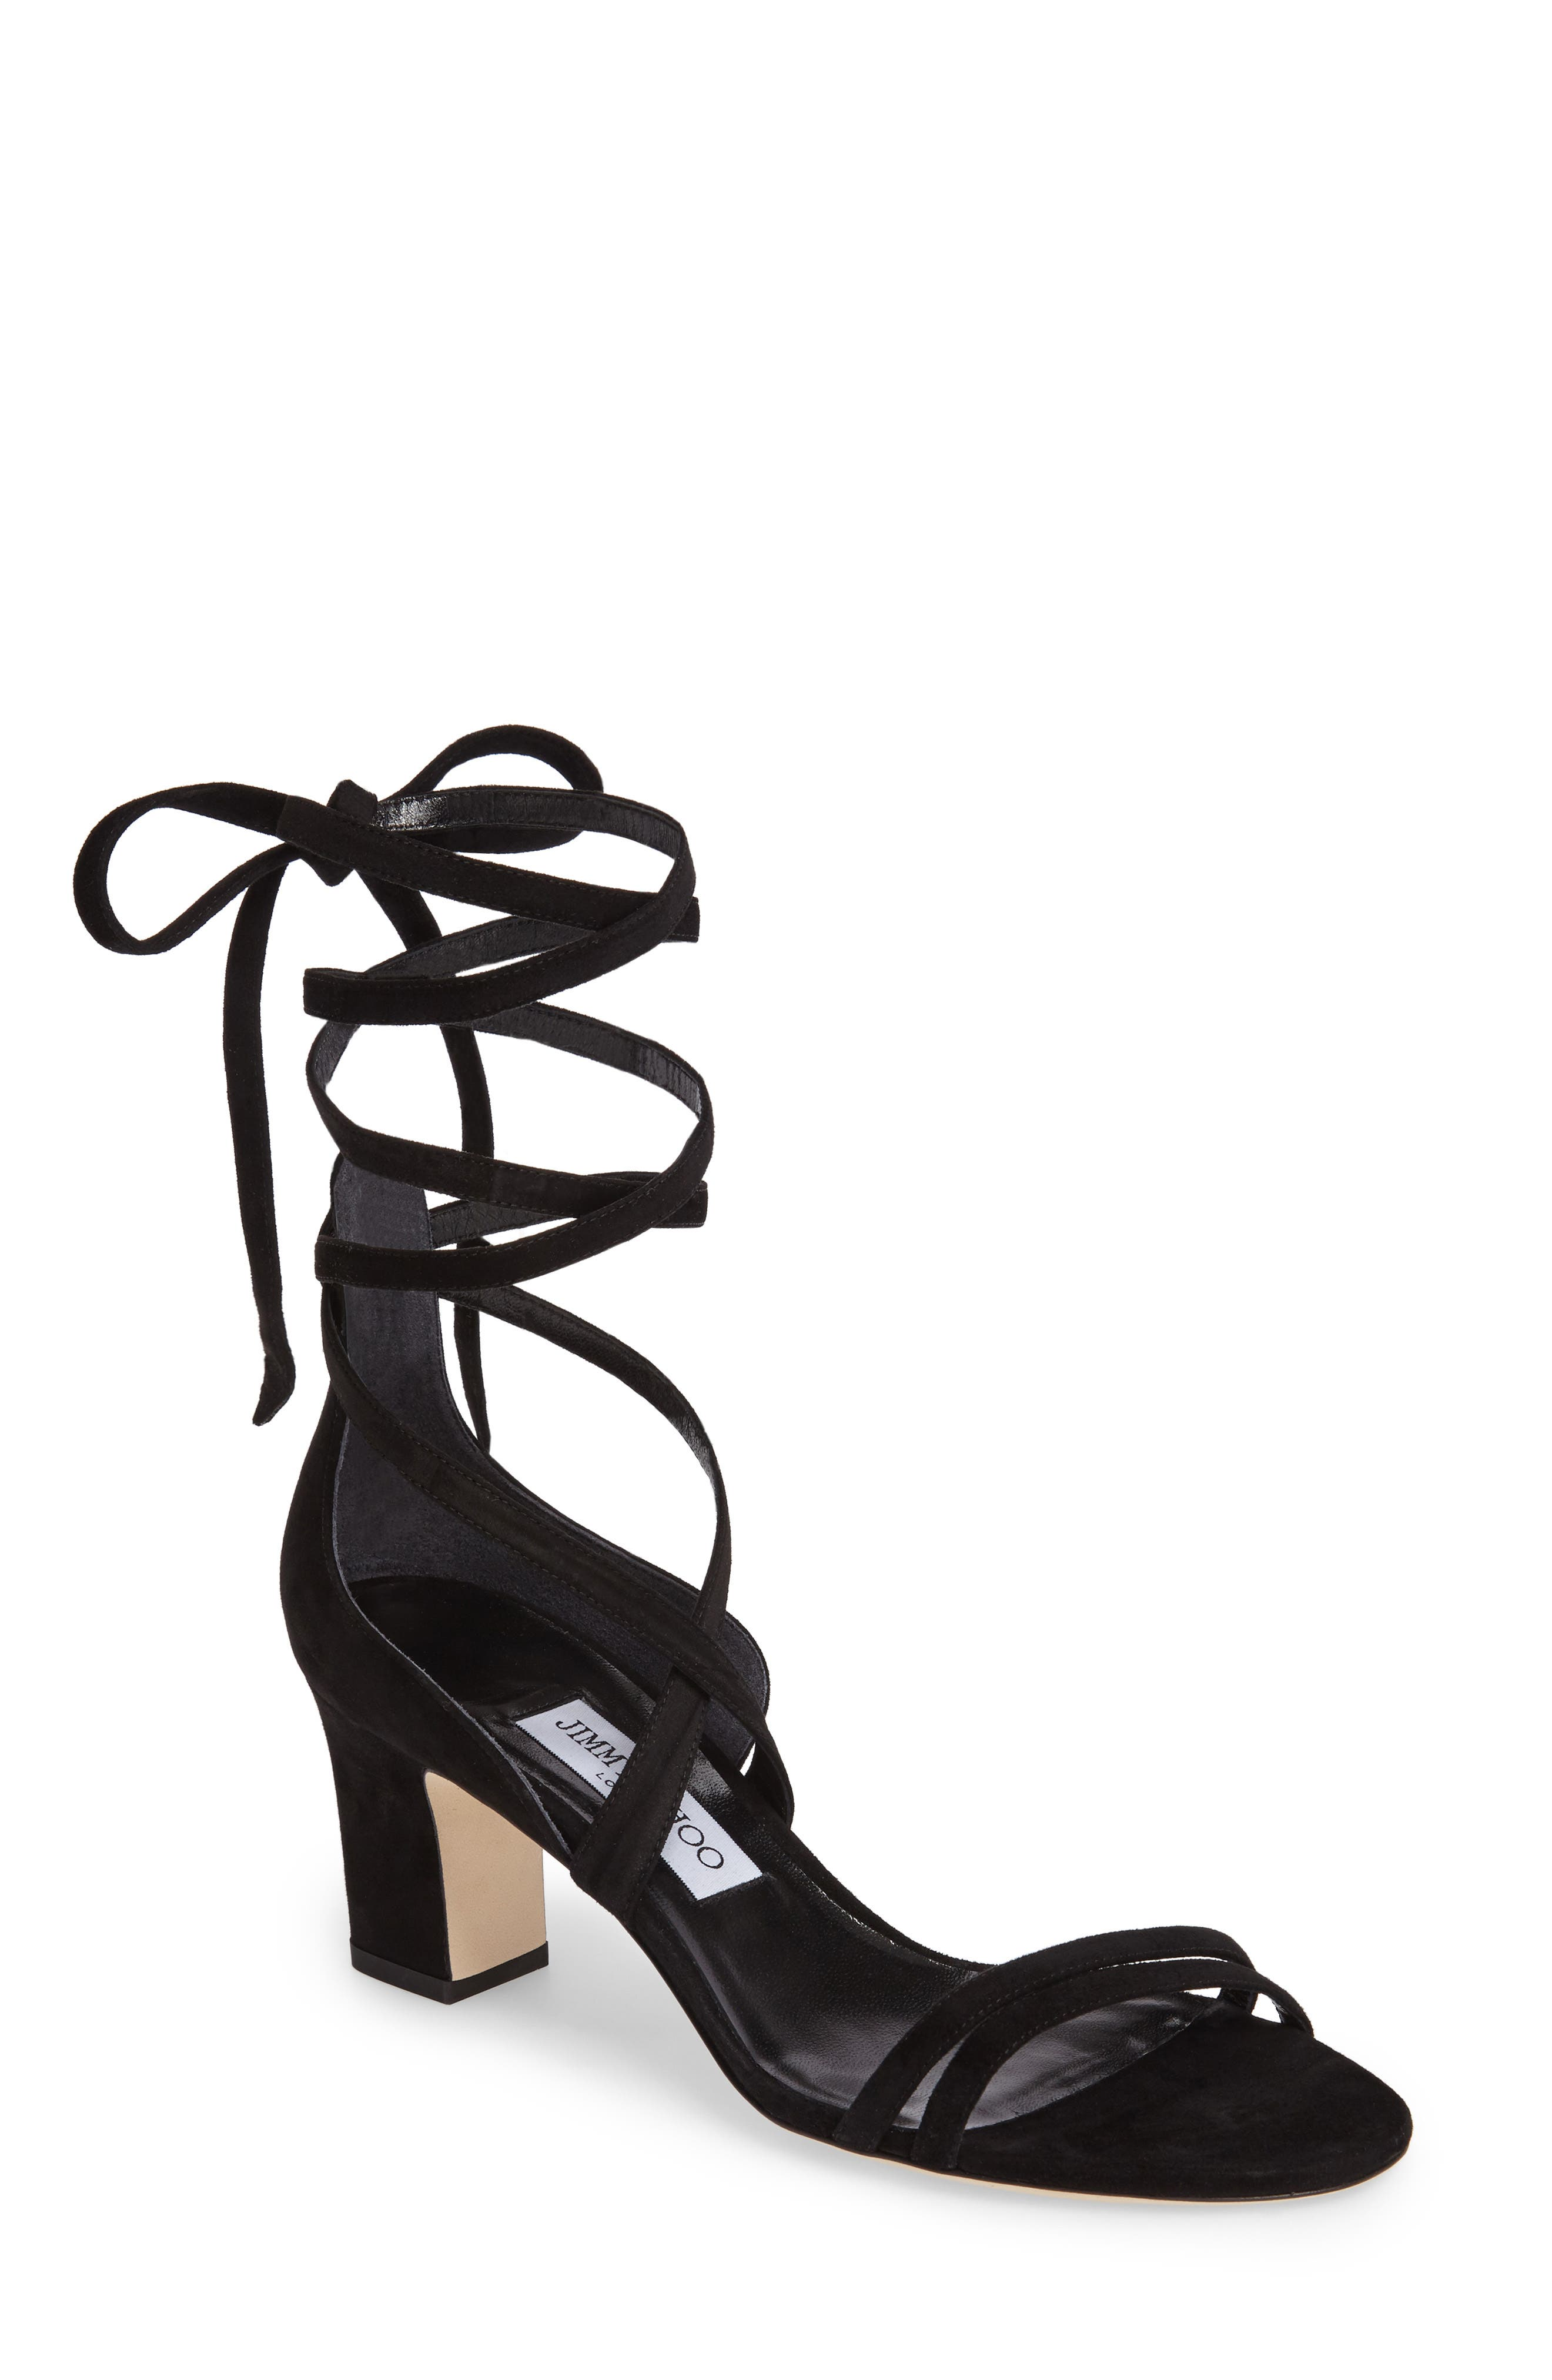 Main Image - Jimmy Choo Flynn Sandal (Women)